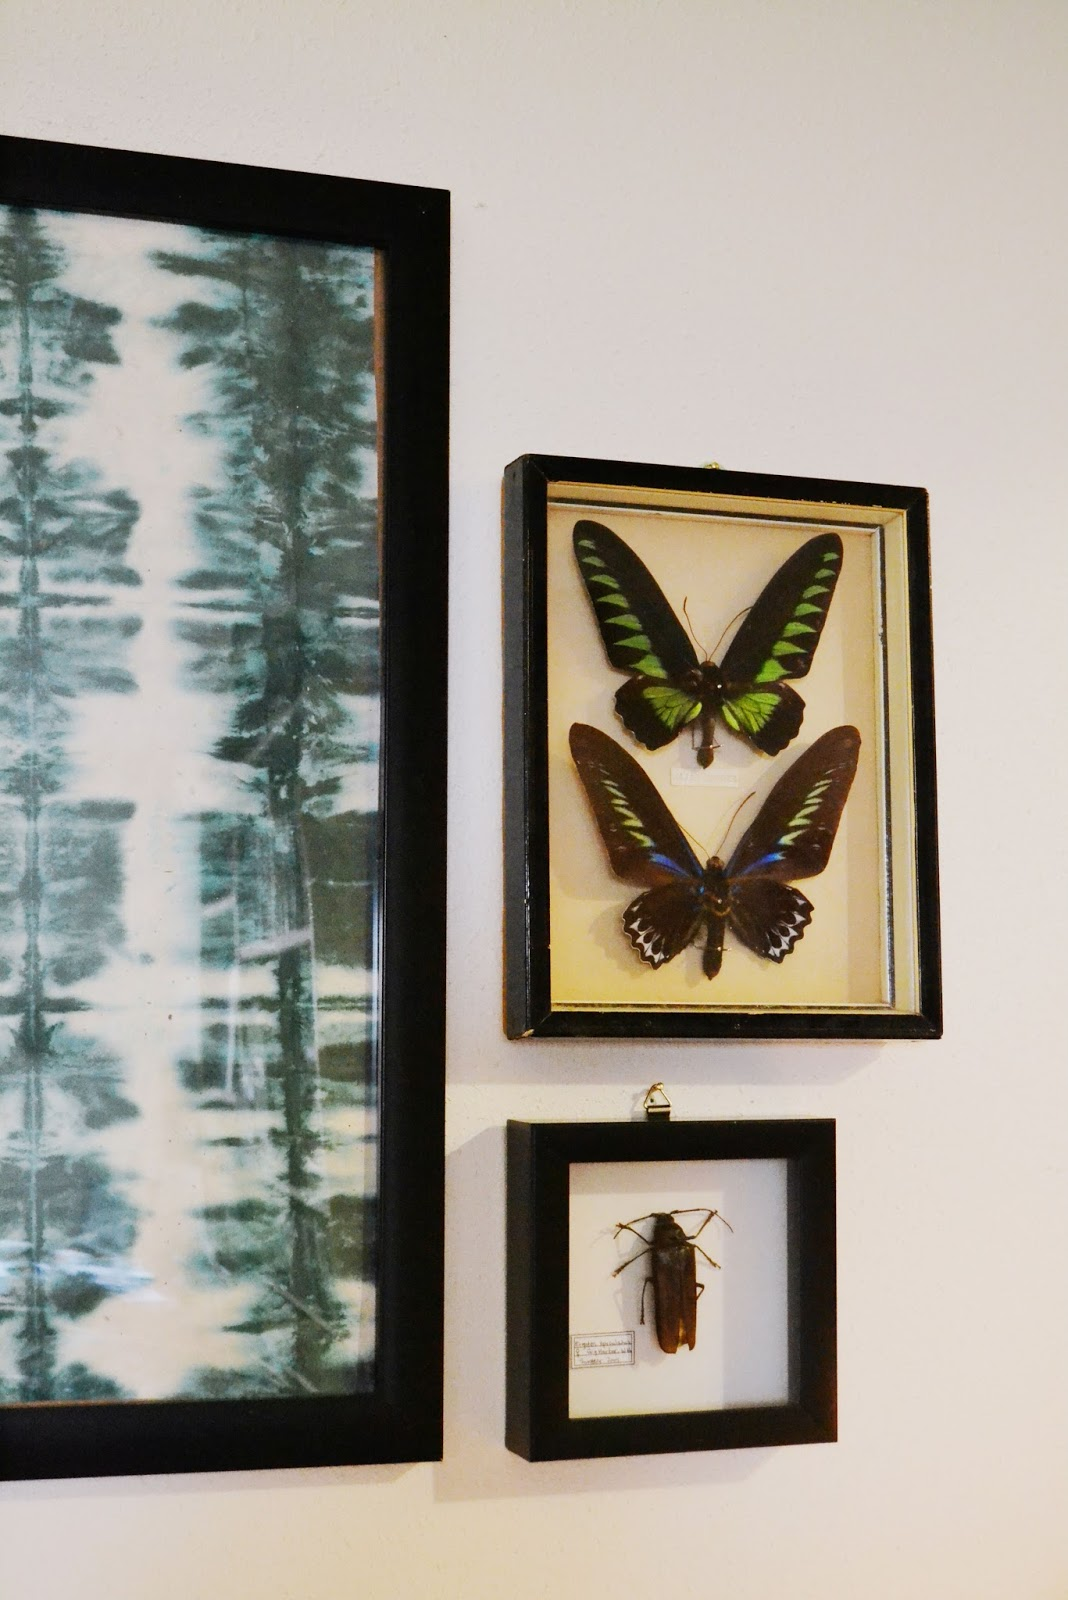 frames, art, entomology, bugs, butterflies, curiosities